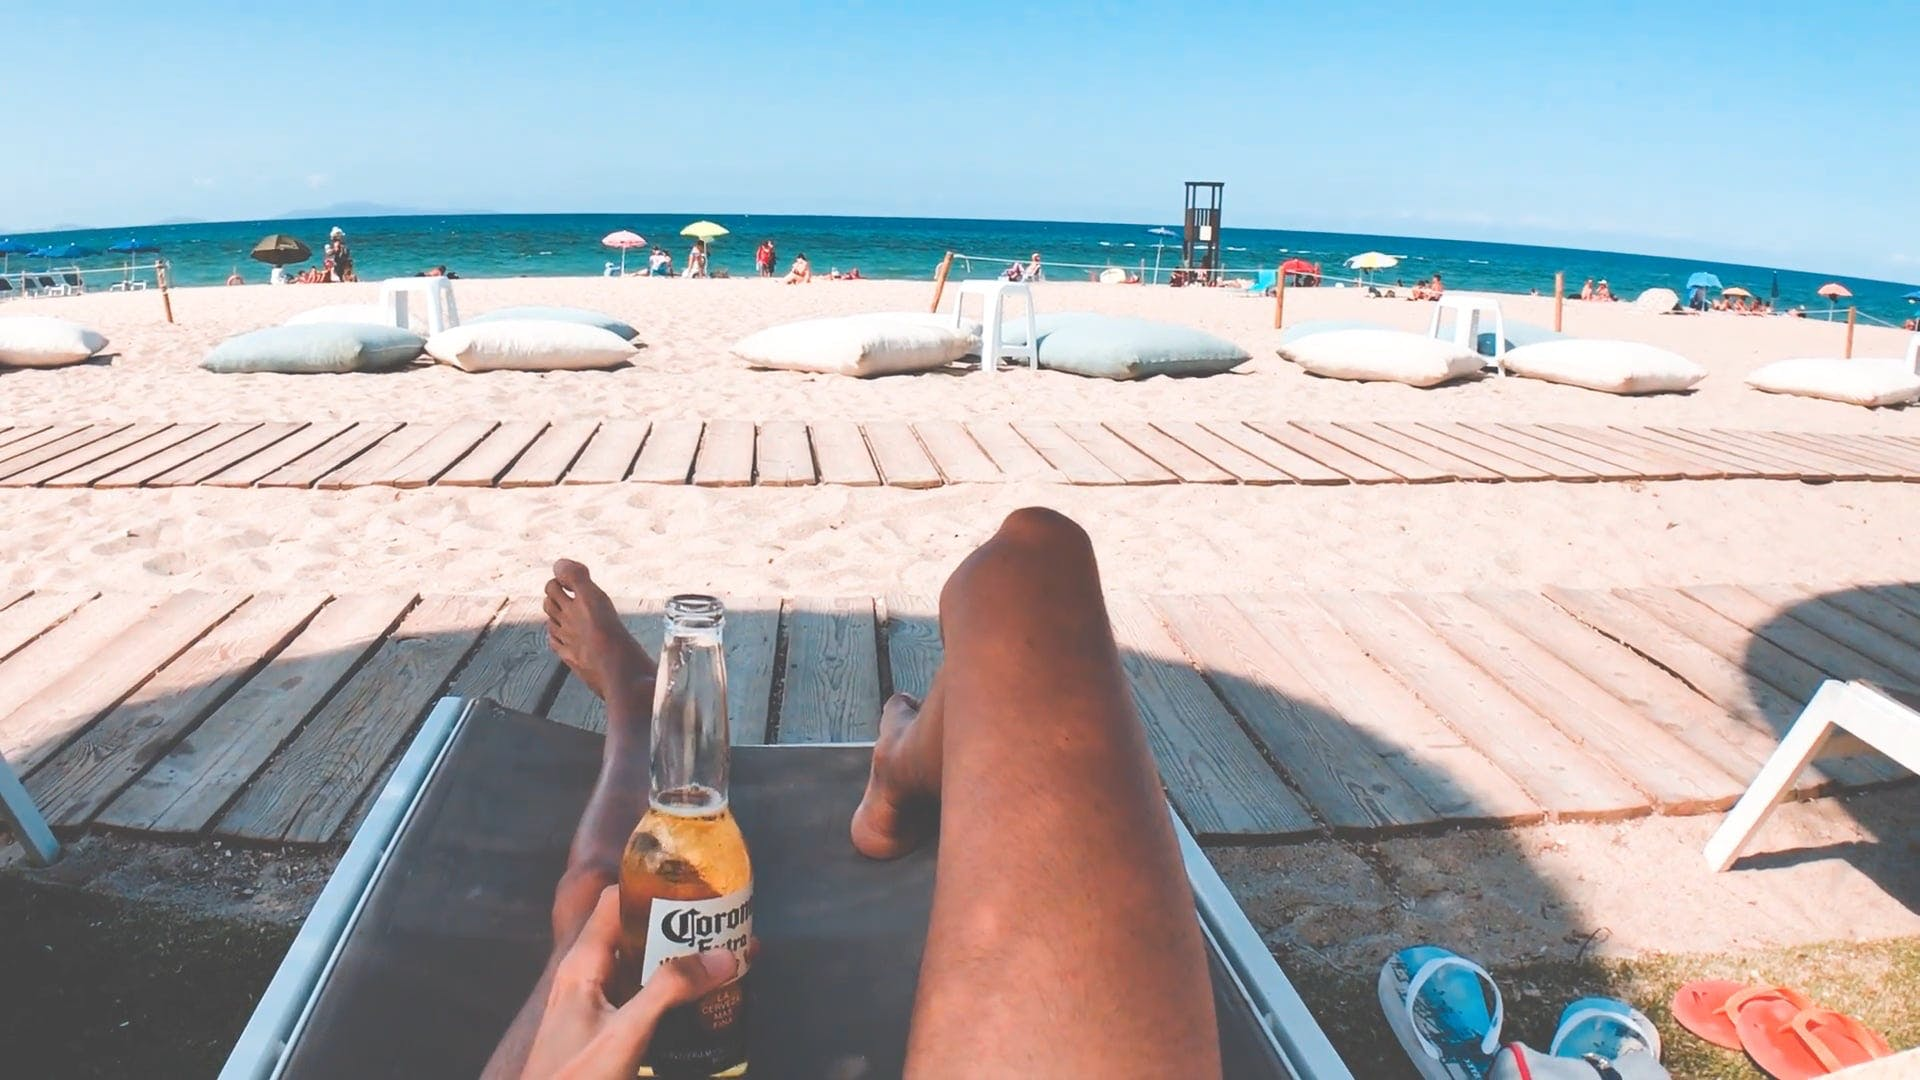 Man Relaxing And Drinking By The Beach